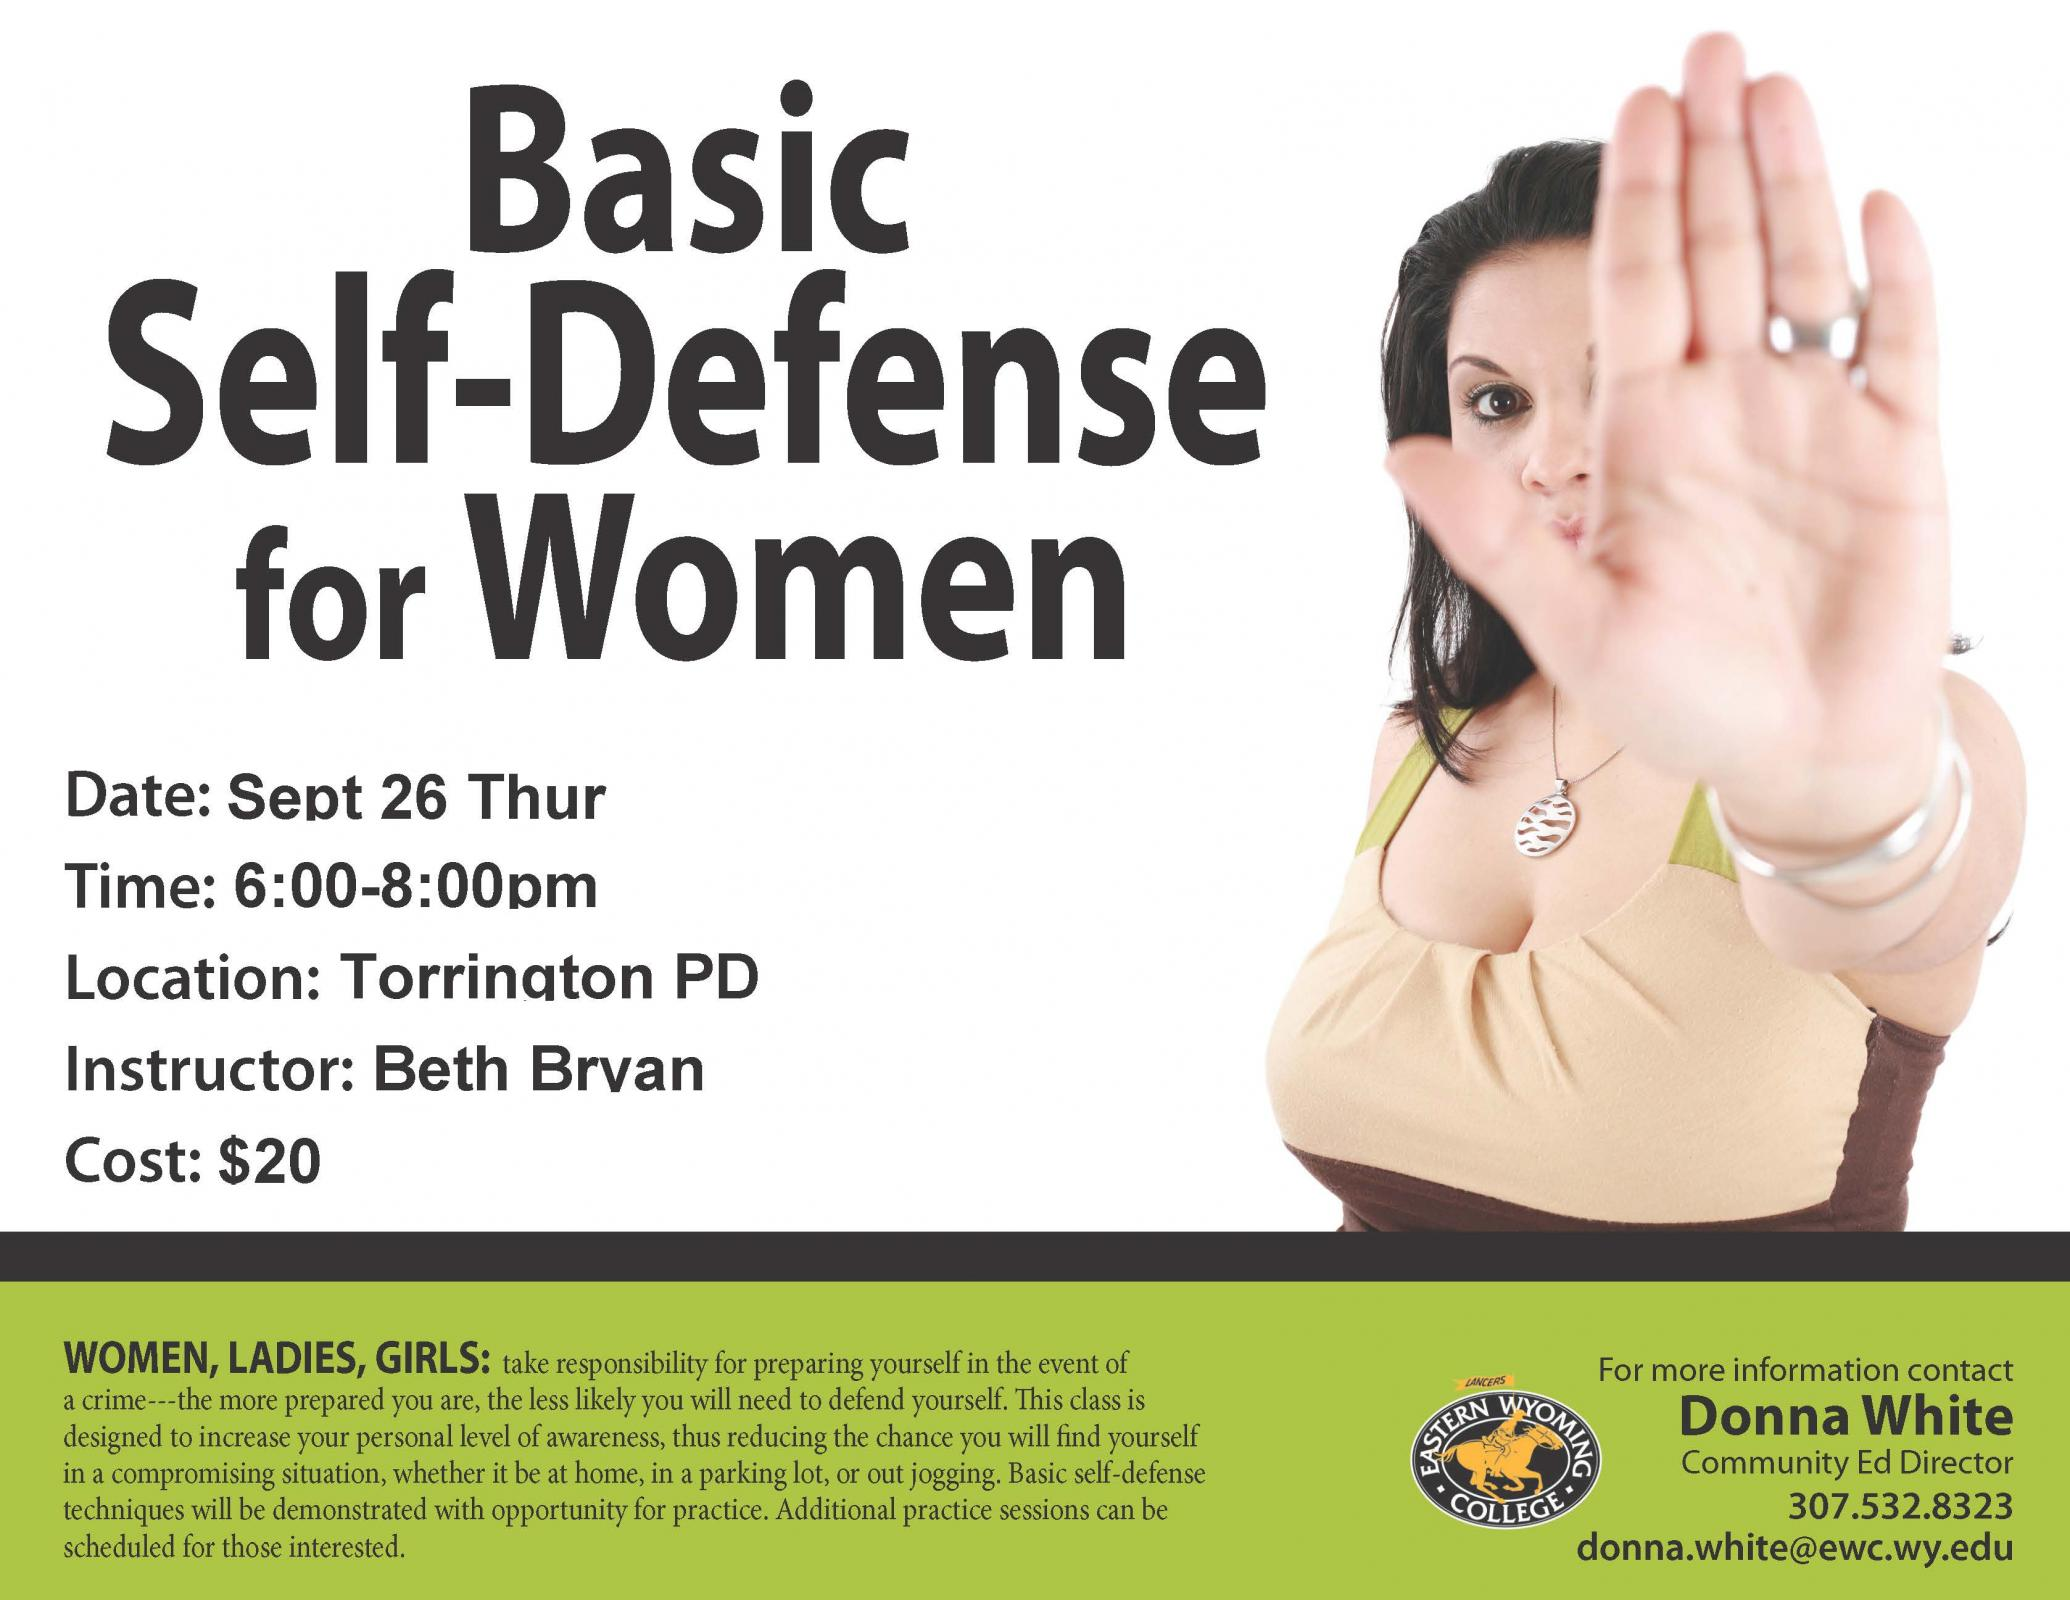 Event Promo Photo For Basic Self-Defense for Women